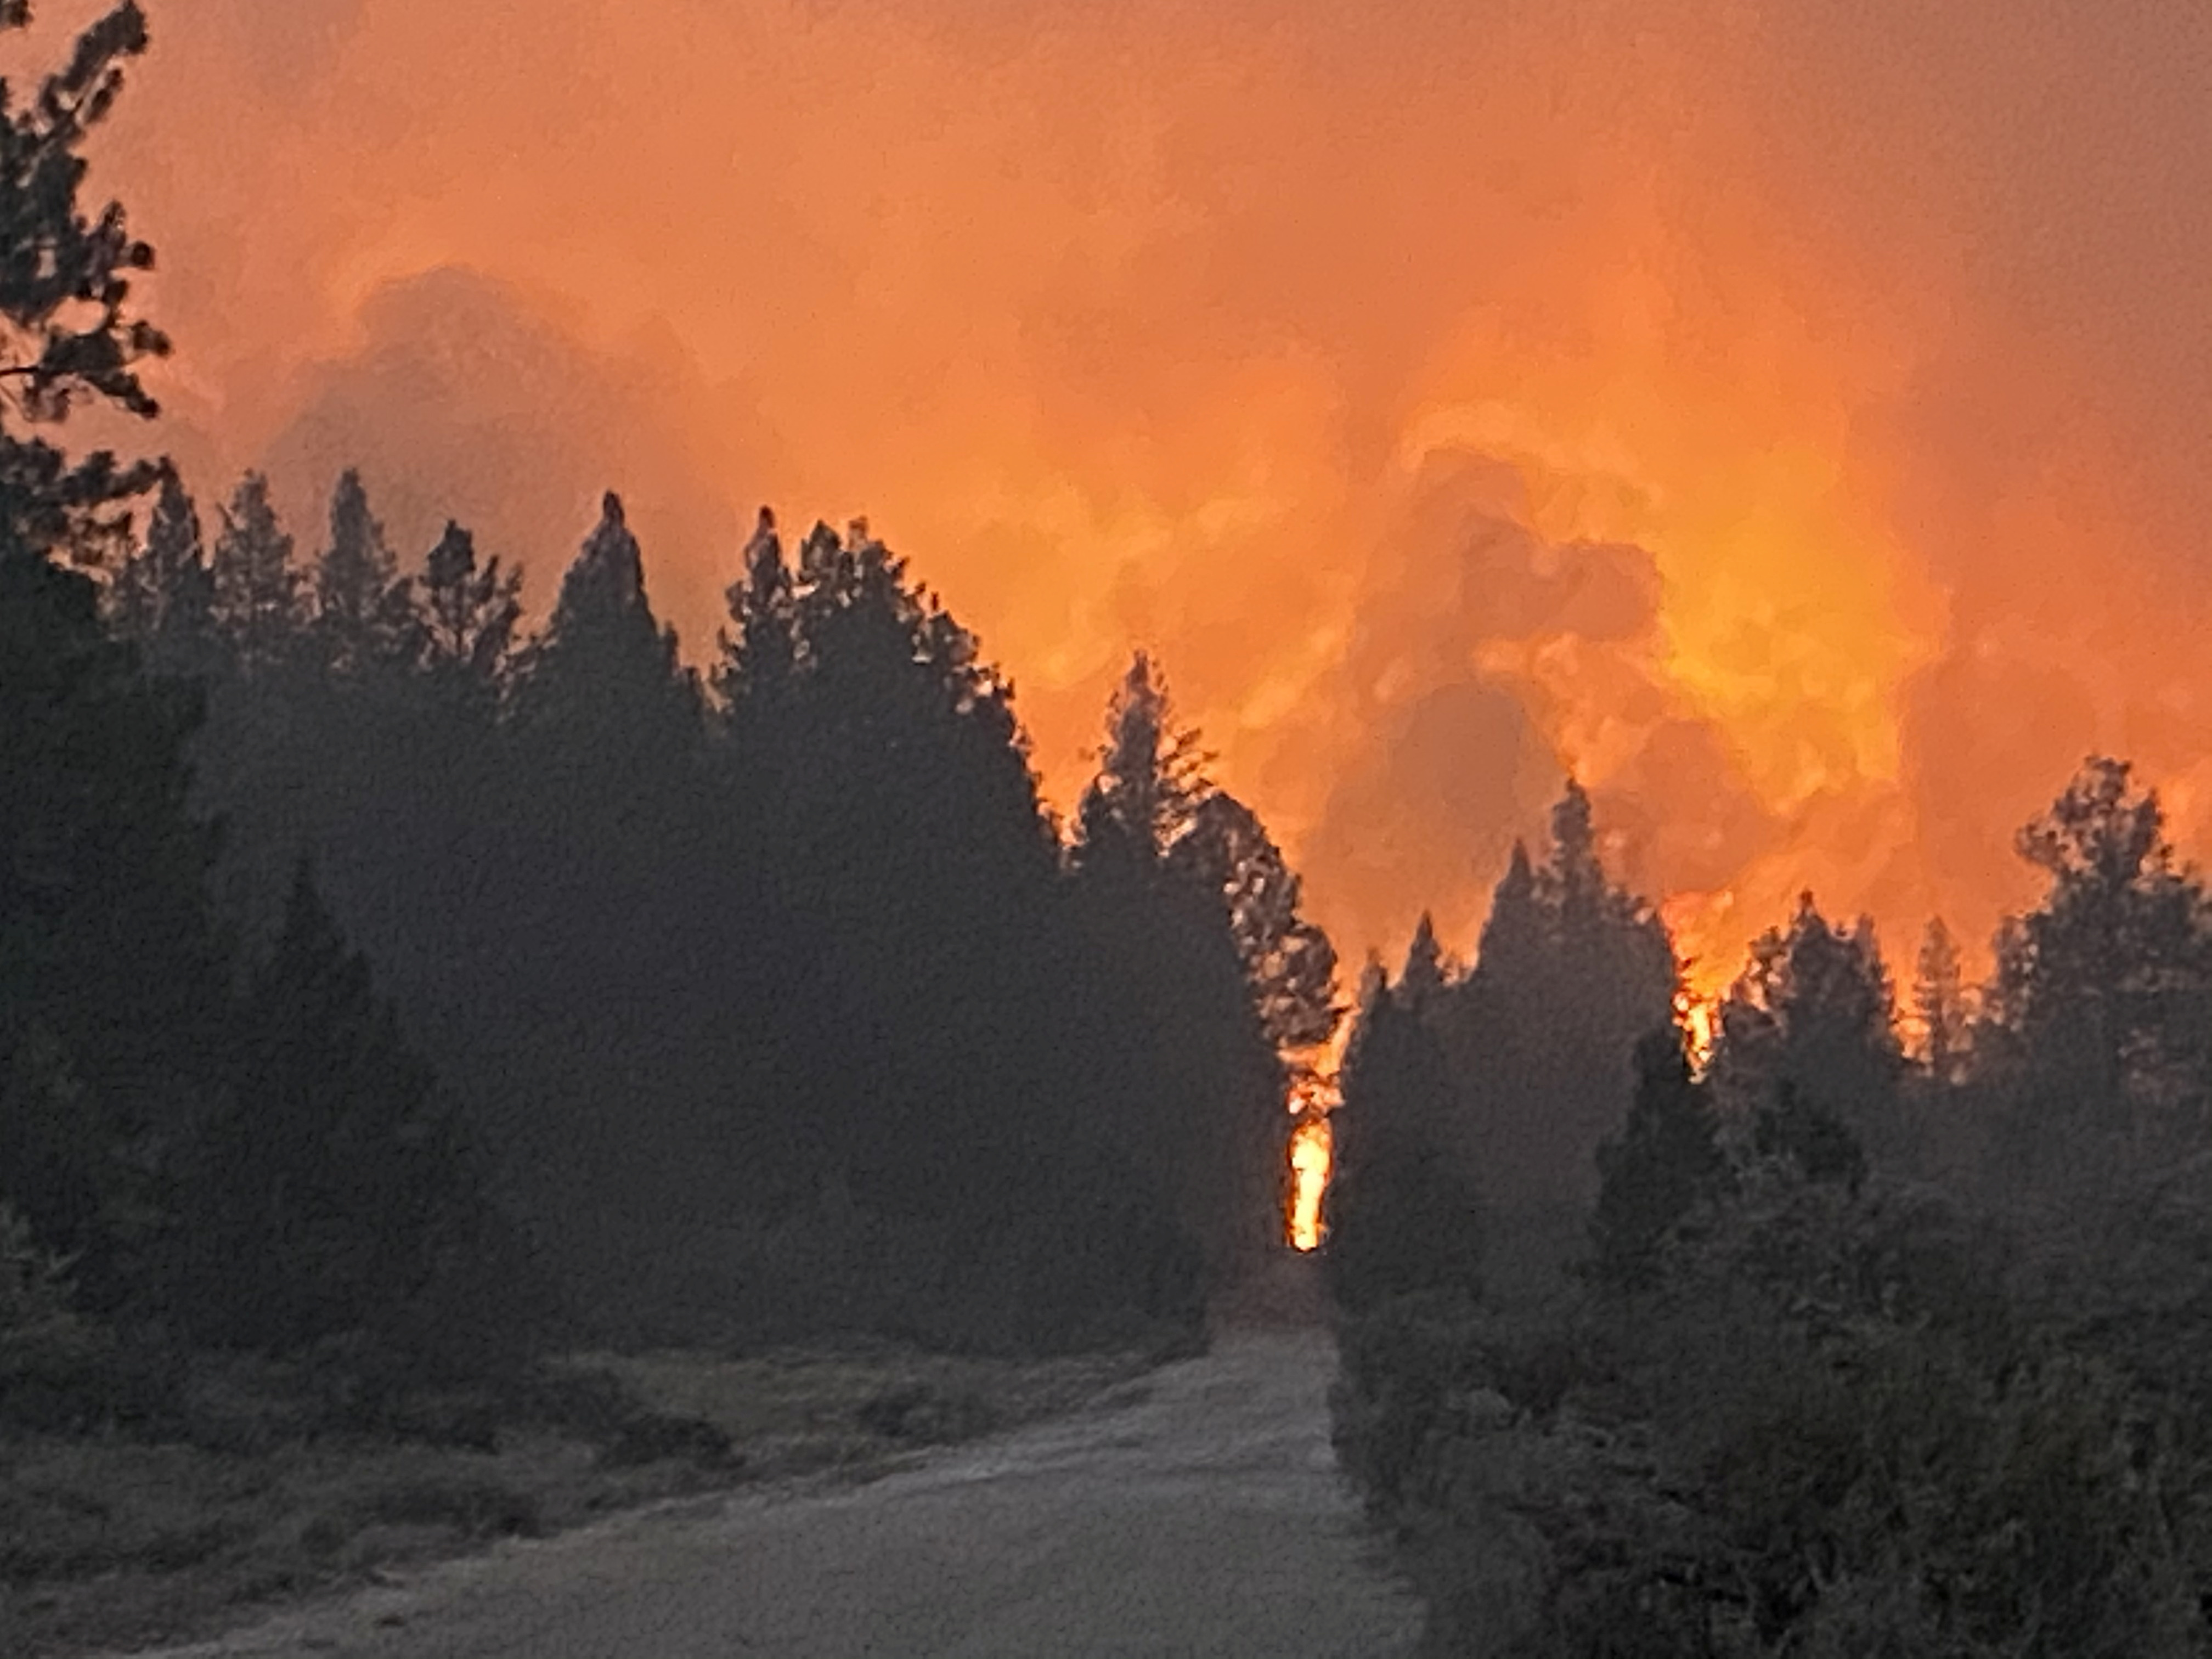 U.S. at Highest Alert Level as Wildfires Rage Across 12 Western States